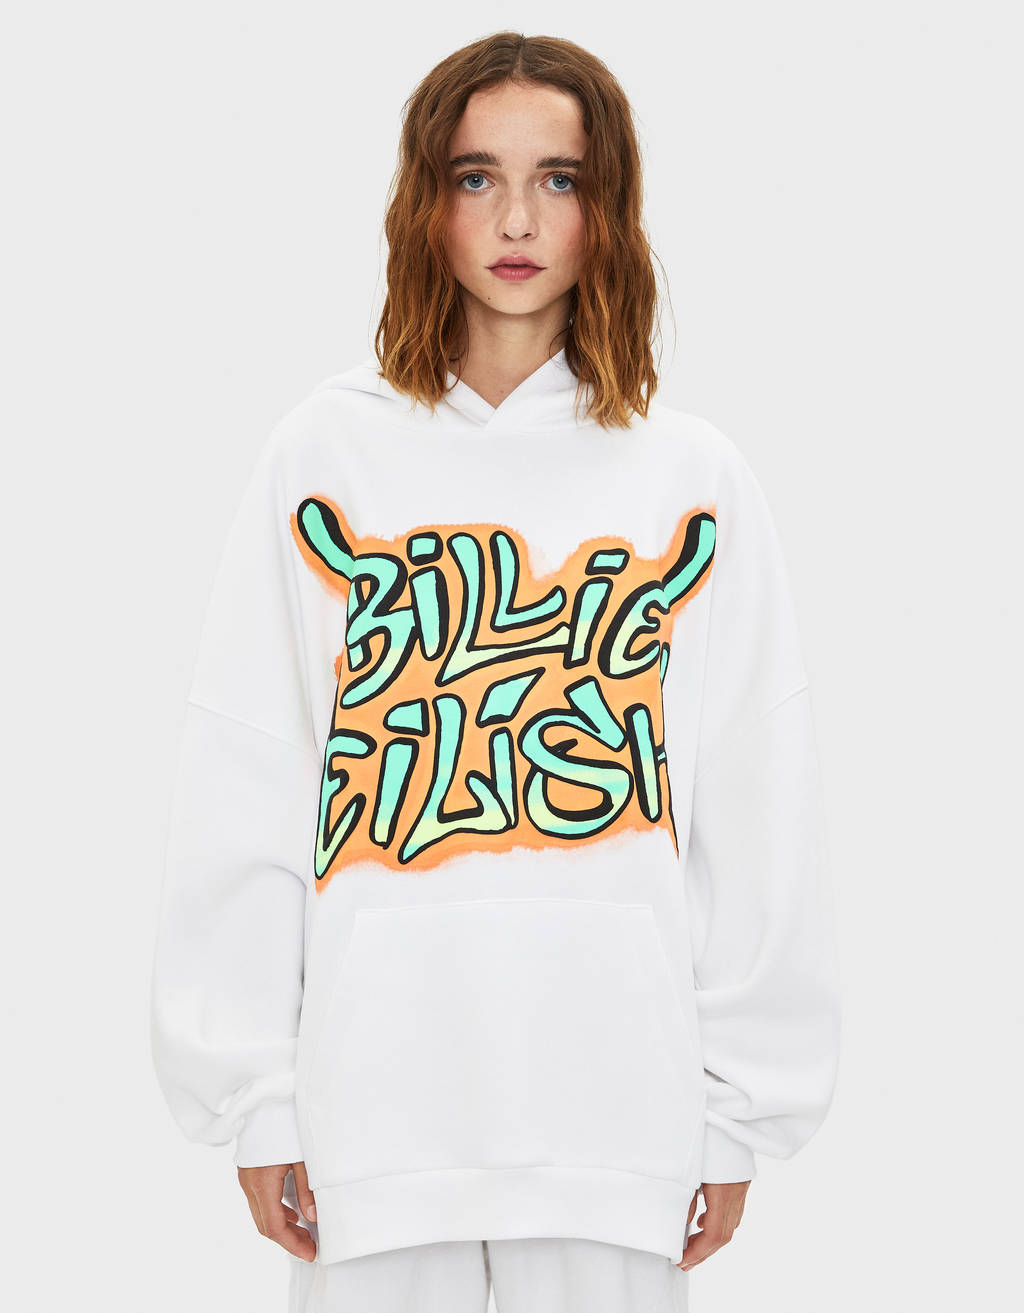 Sudadera con graffiti Billie Eilish x Bershka